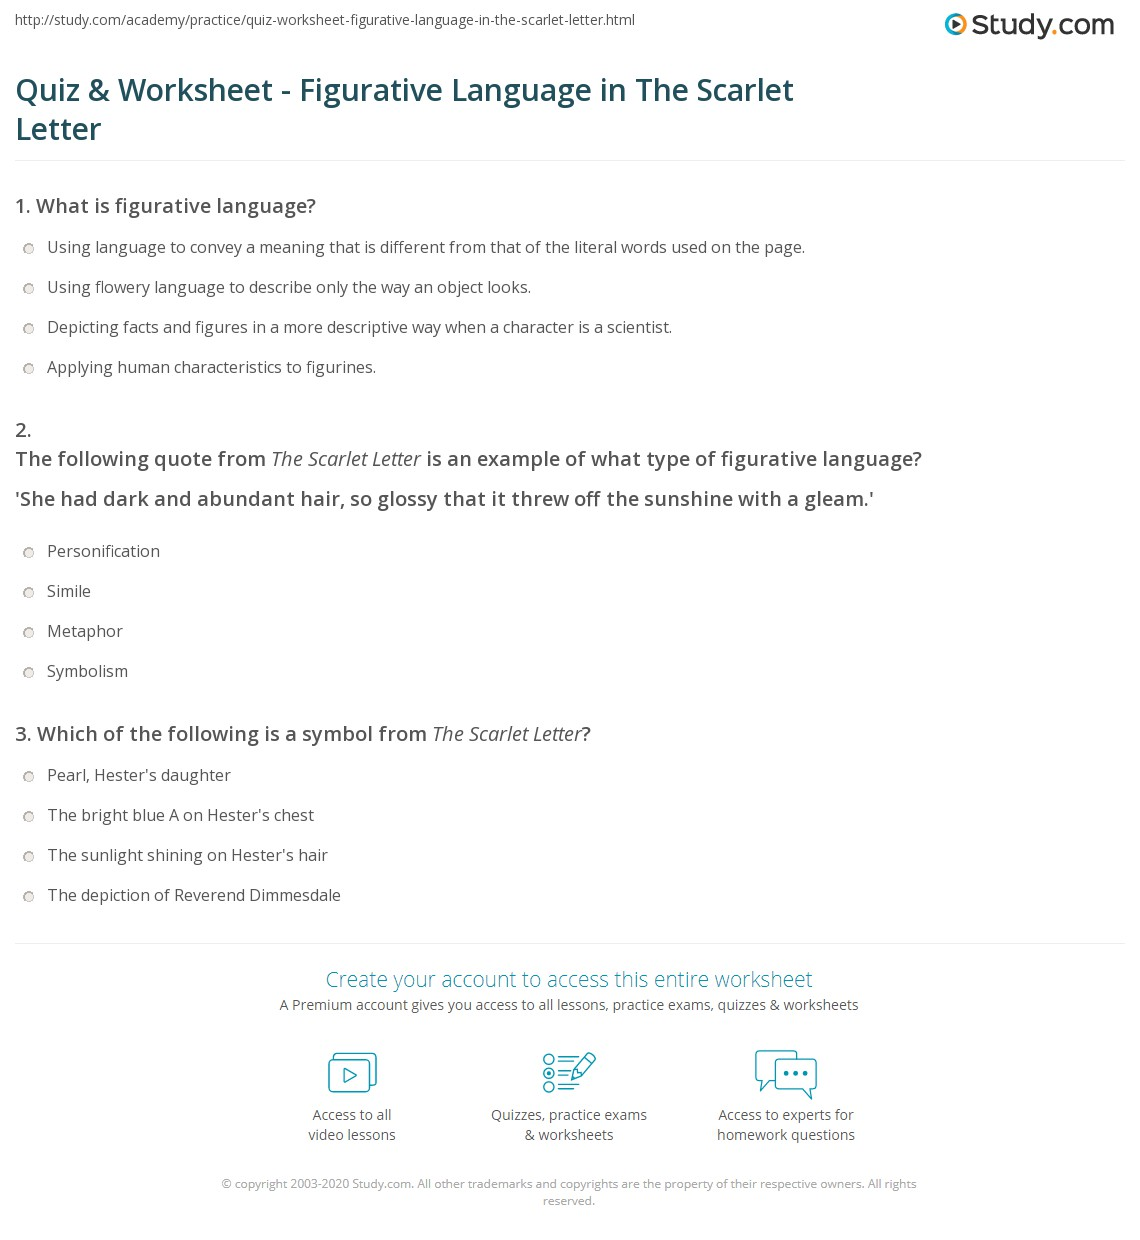 Quiz Worksheet Figurative Language In The Scarlet Letter Study Com